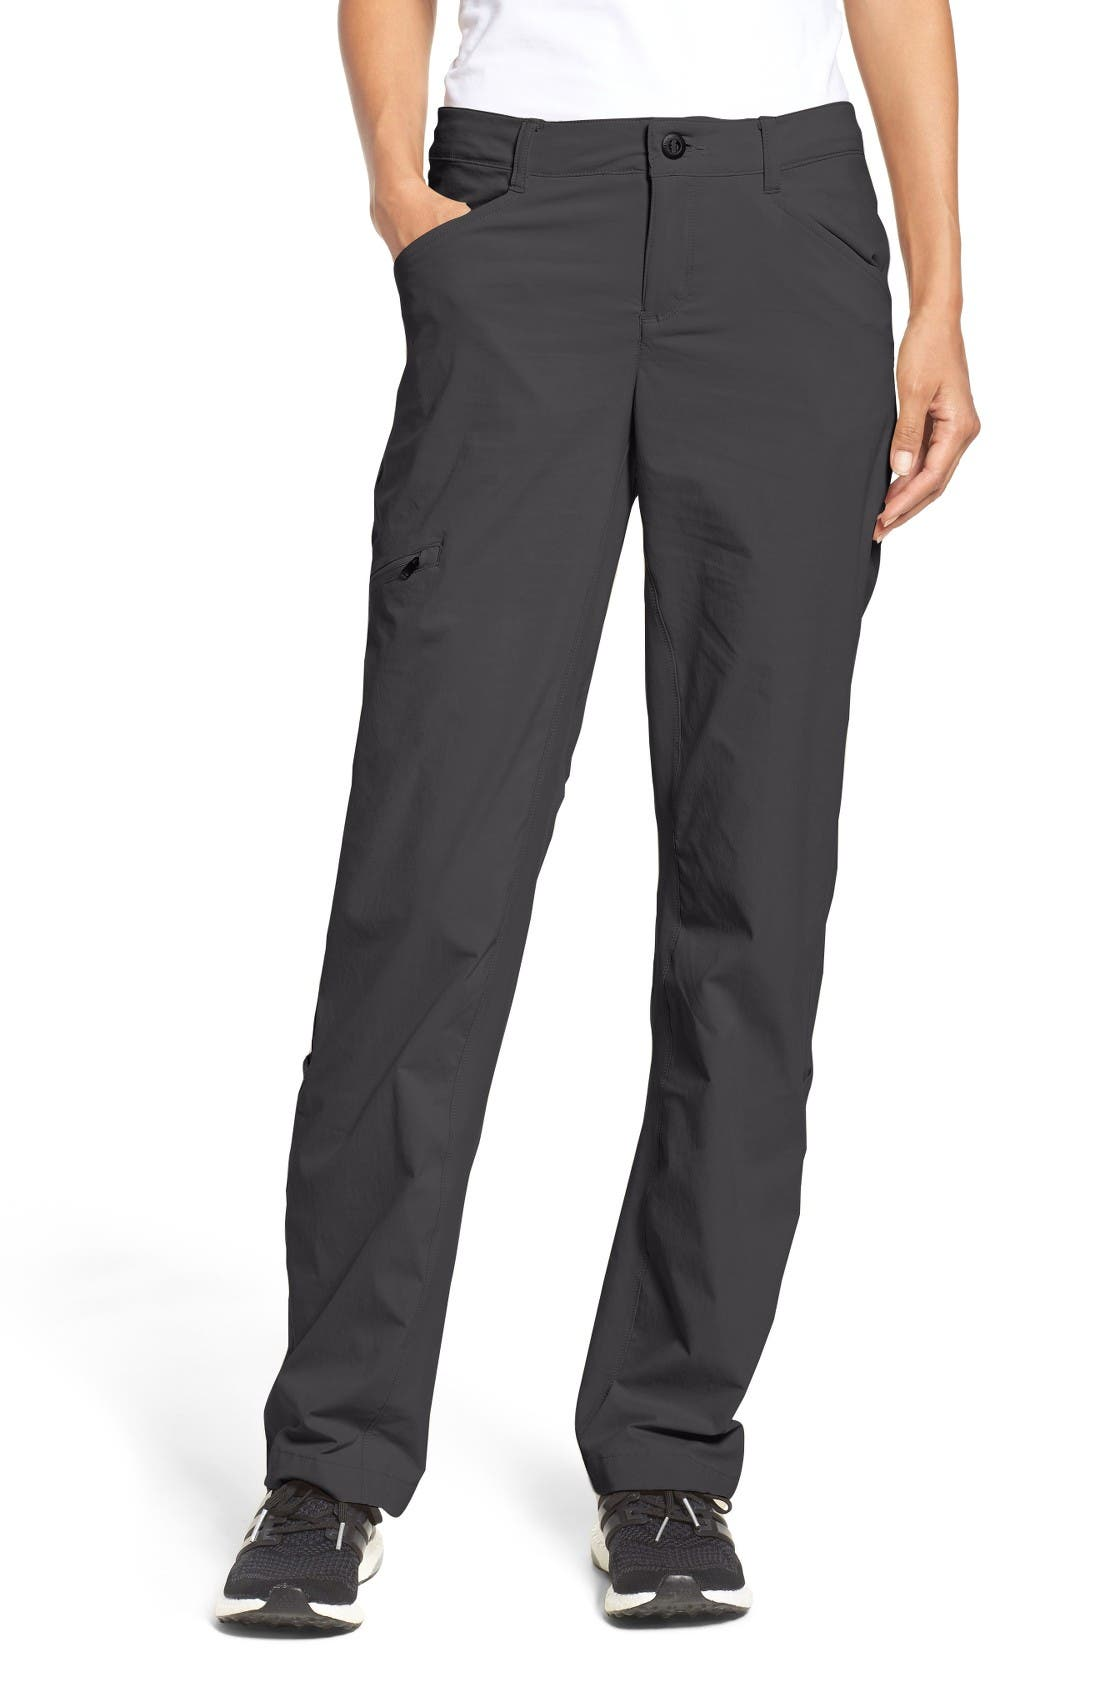 PATAGONIA Quandary Pants, Main, color, FORGE GREY